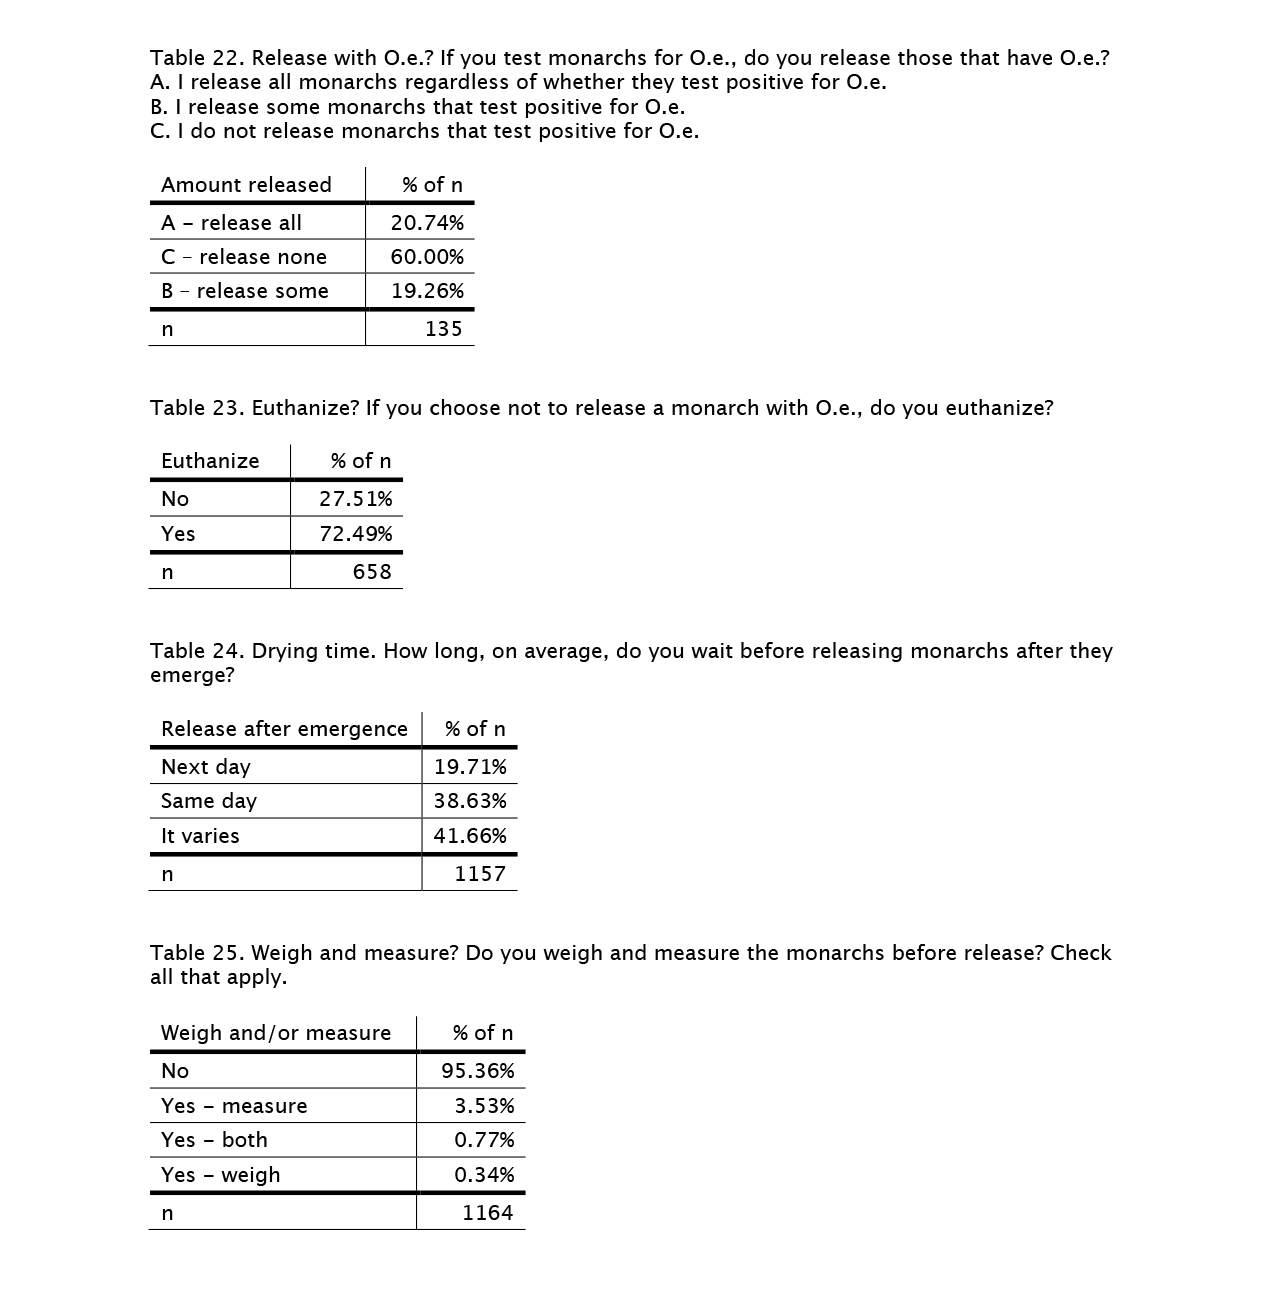 rearing-survey-tables-22-25